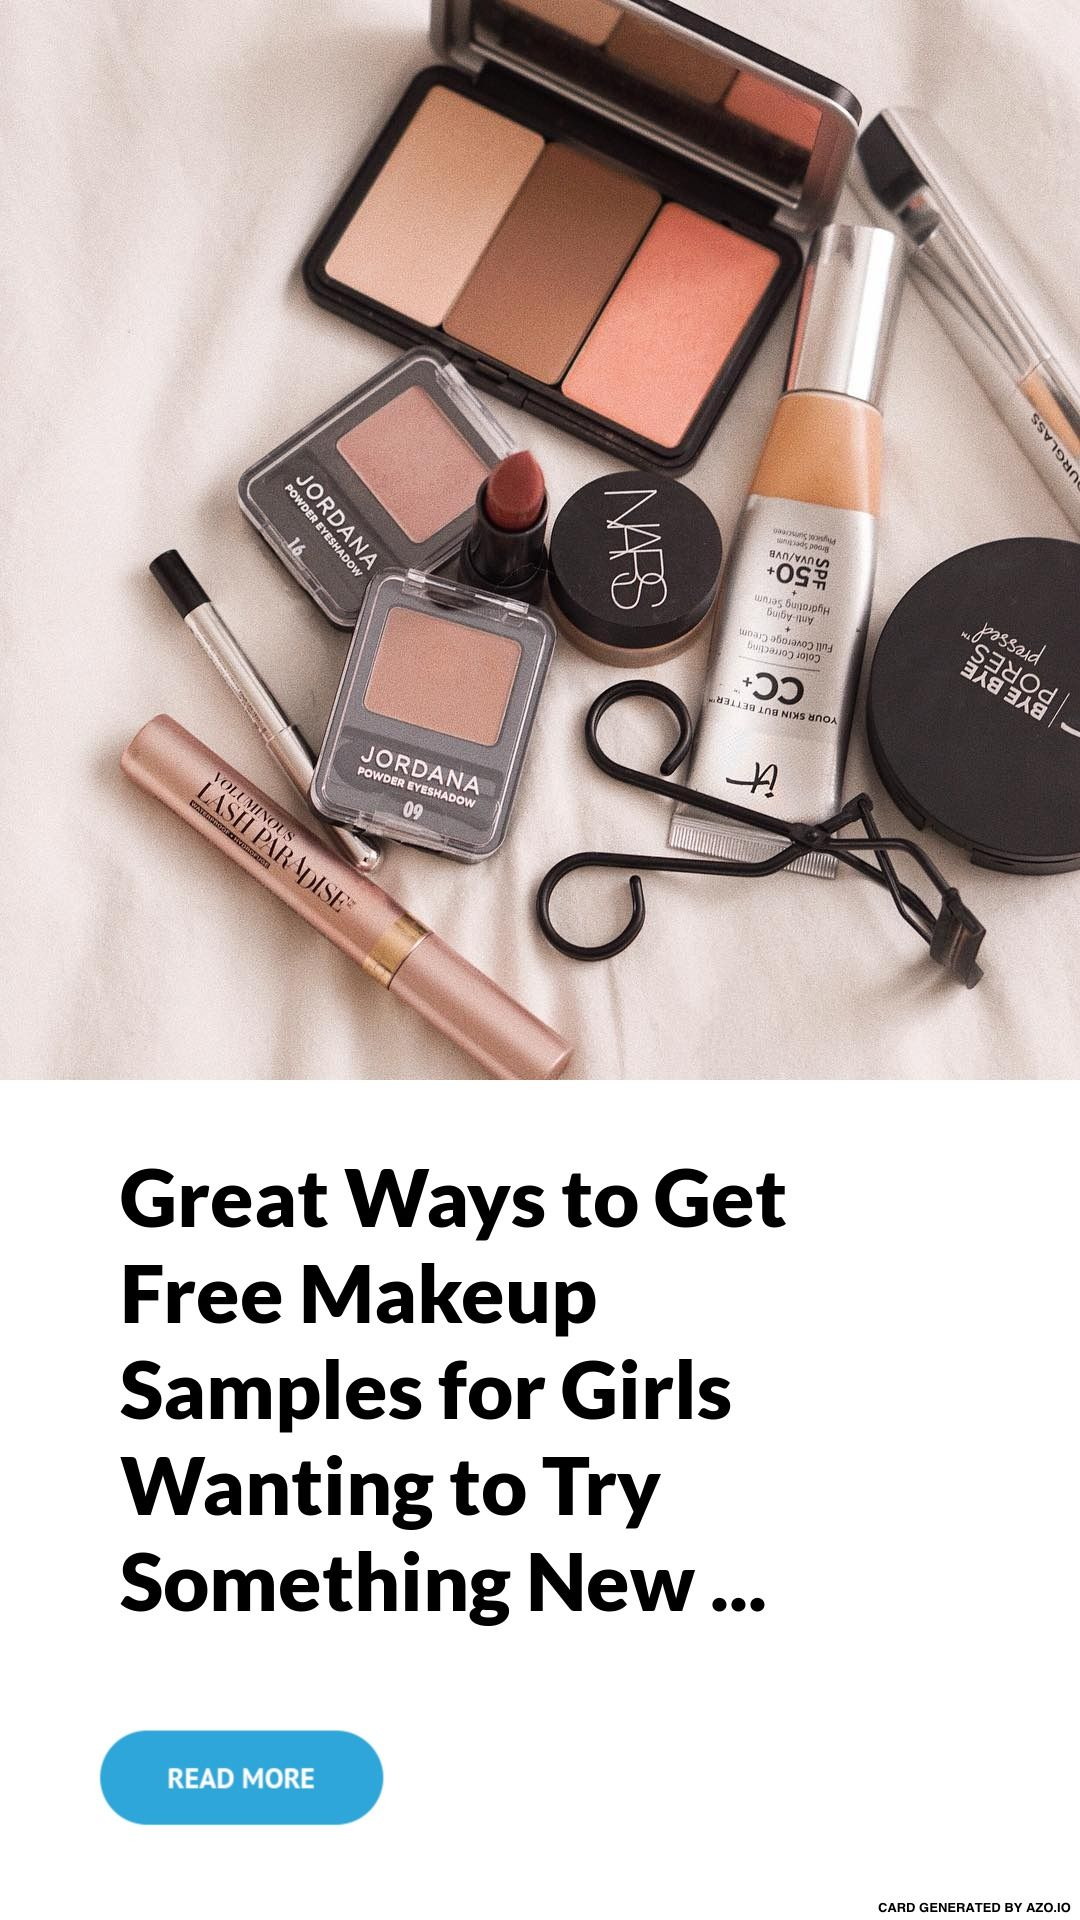 Great Ways to Get Free Makeup Samples for Girls Wanting